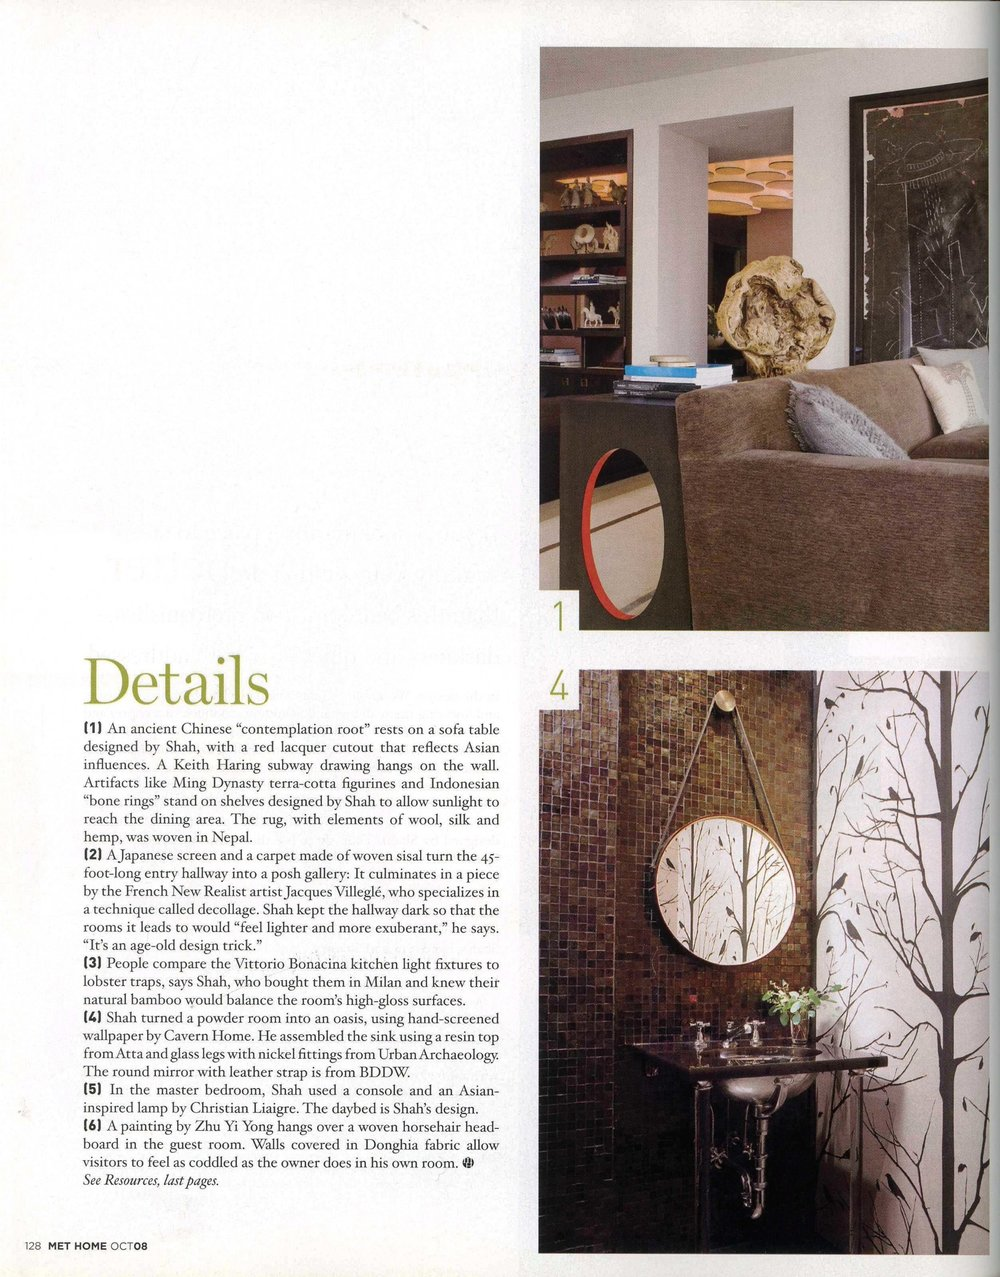 Met Home_Oct 08_Full Article 2_Page_12.jpg